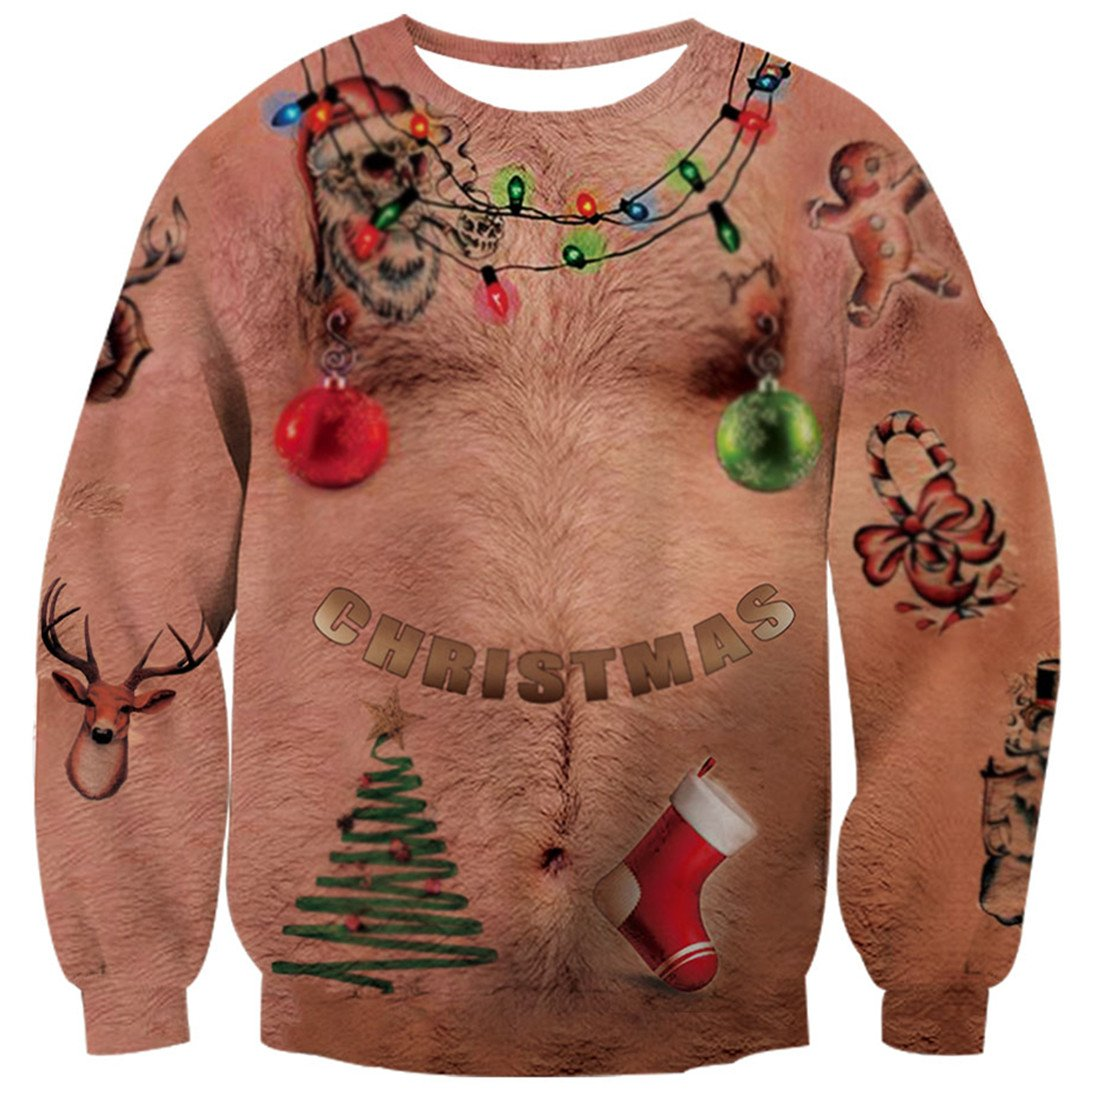 3d762d5c8 Galleon - Uideazone Men Women Printed Ugly Christmas Chest Hair T Shirt  Funny X-mas Party Graphic Tee Clothes Plus Size Funny Asia XXL= US XL